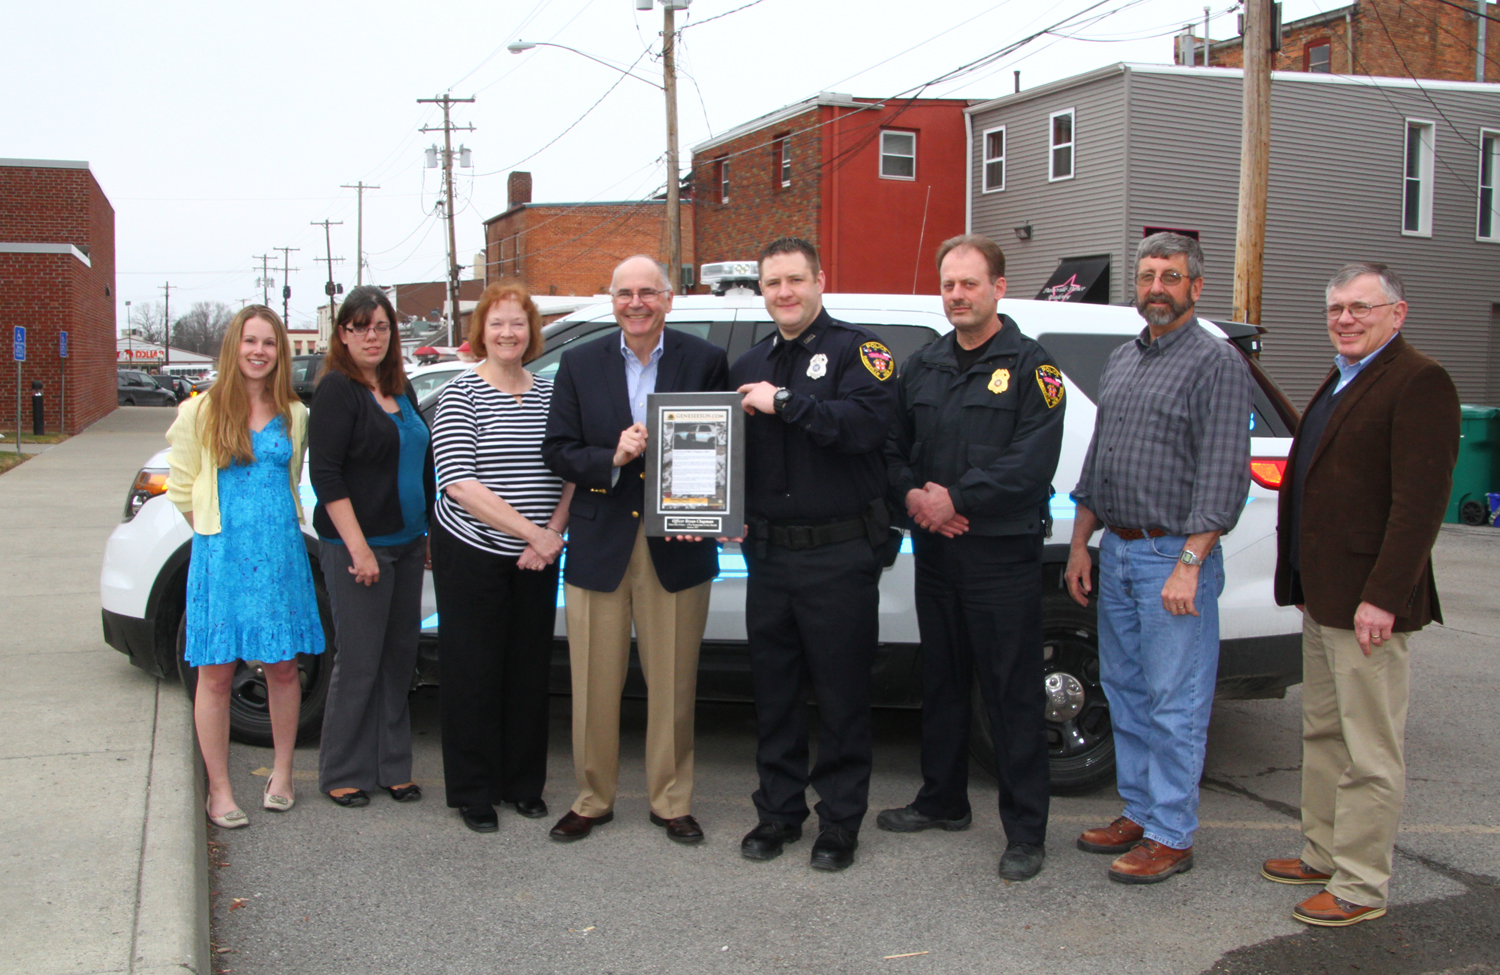 Cool-Nerved Officer Chapman Recognized for Heroic Valor